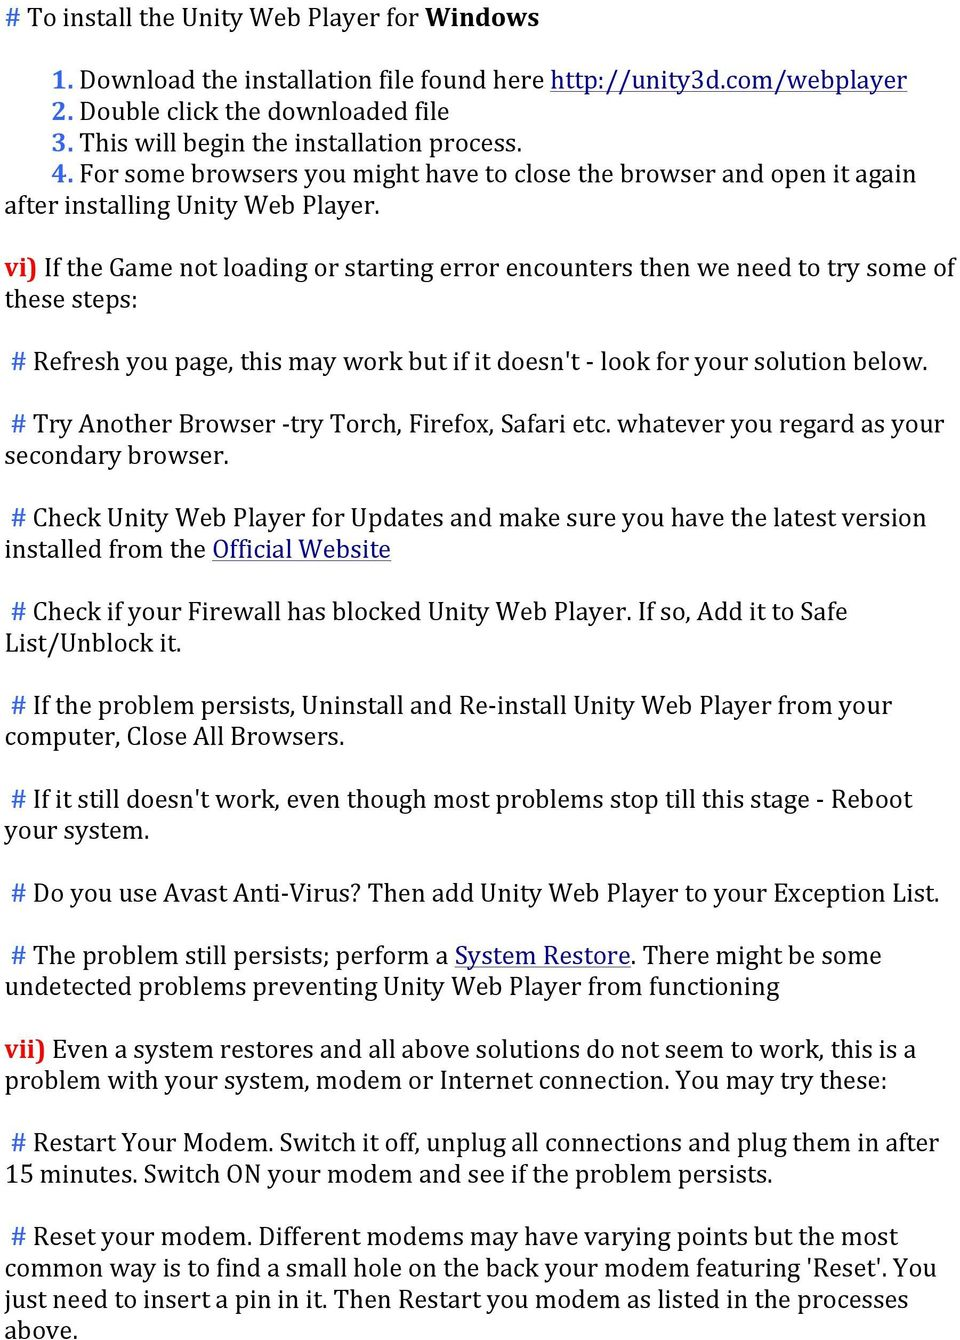 vi) If the Game not loading or starting error encounters then we need to try some of these steps: # Refresh you page, this may work but if it doesn't - look for your solution below.